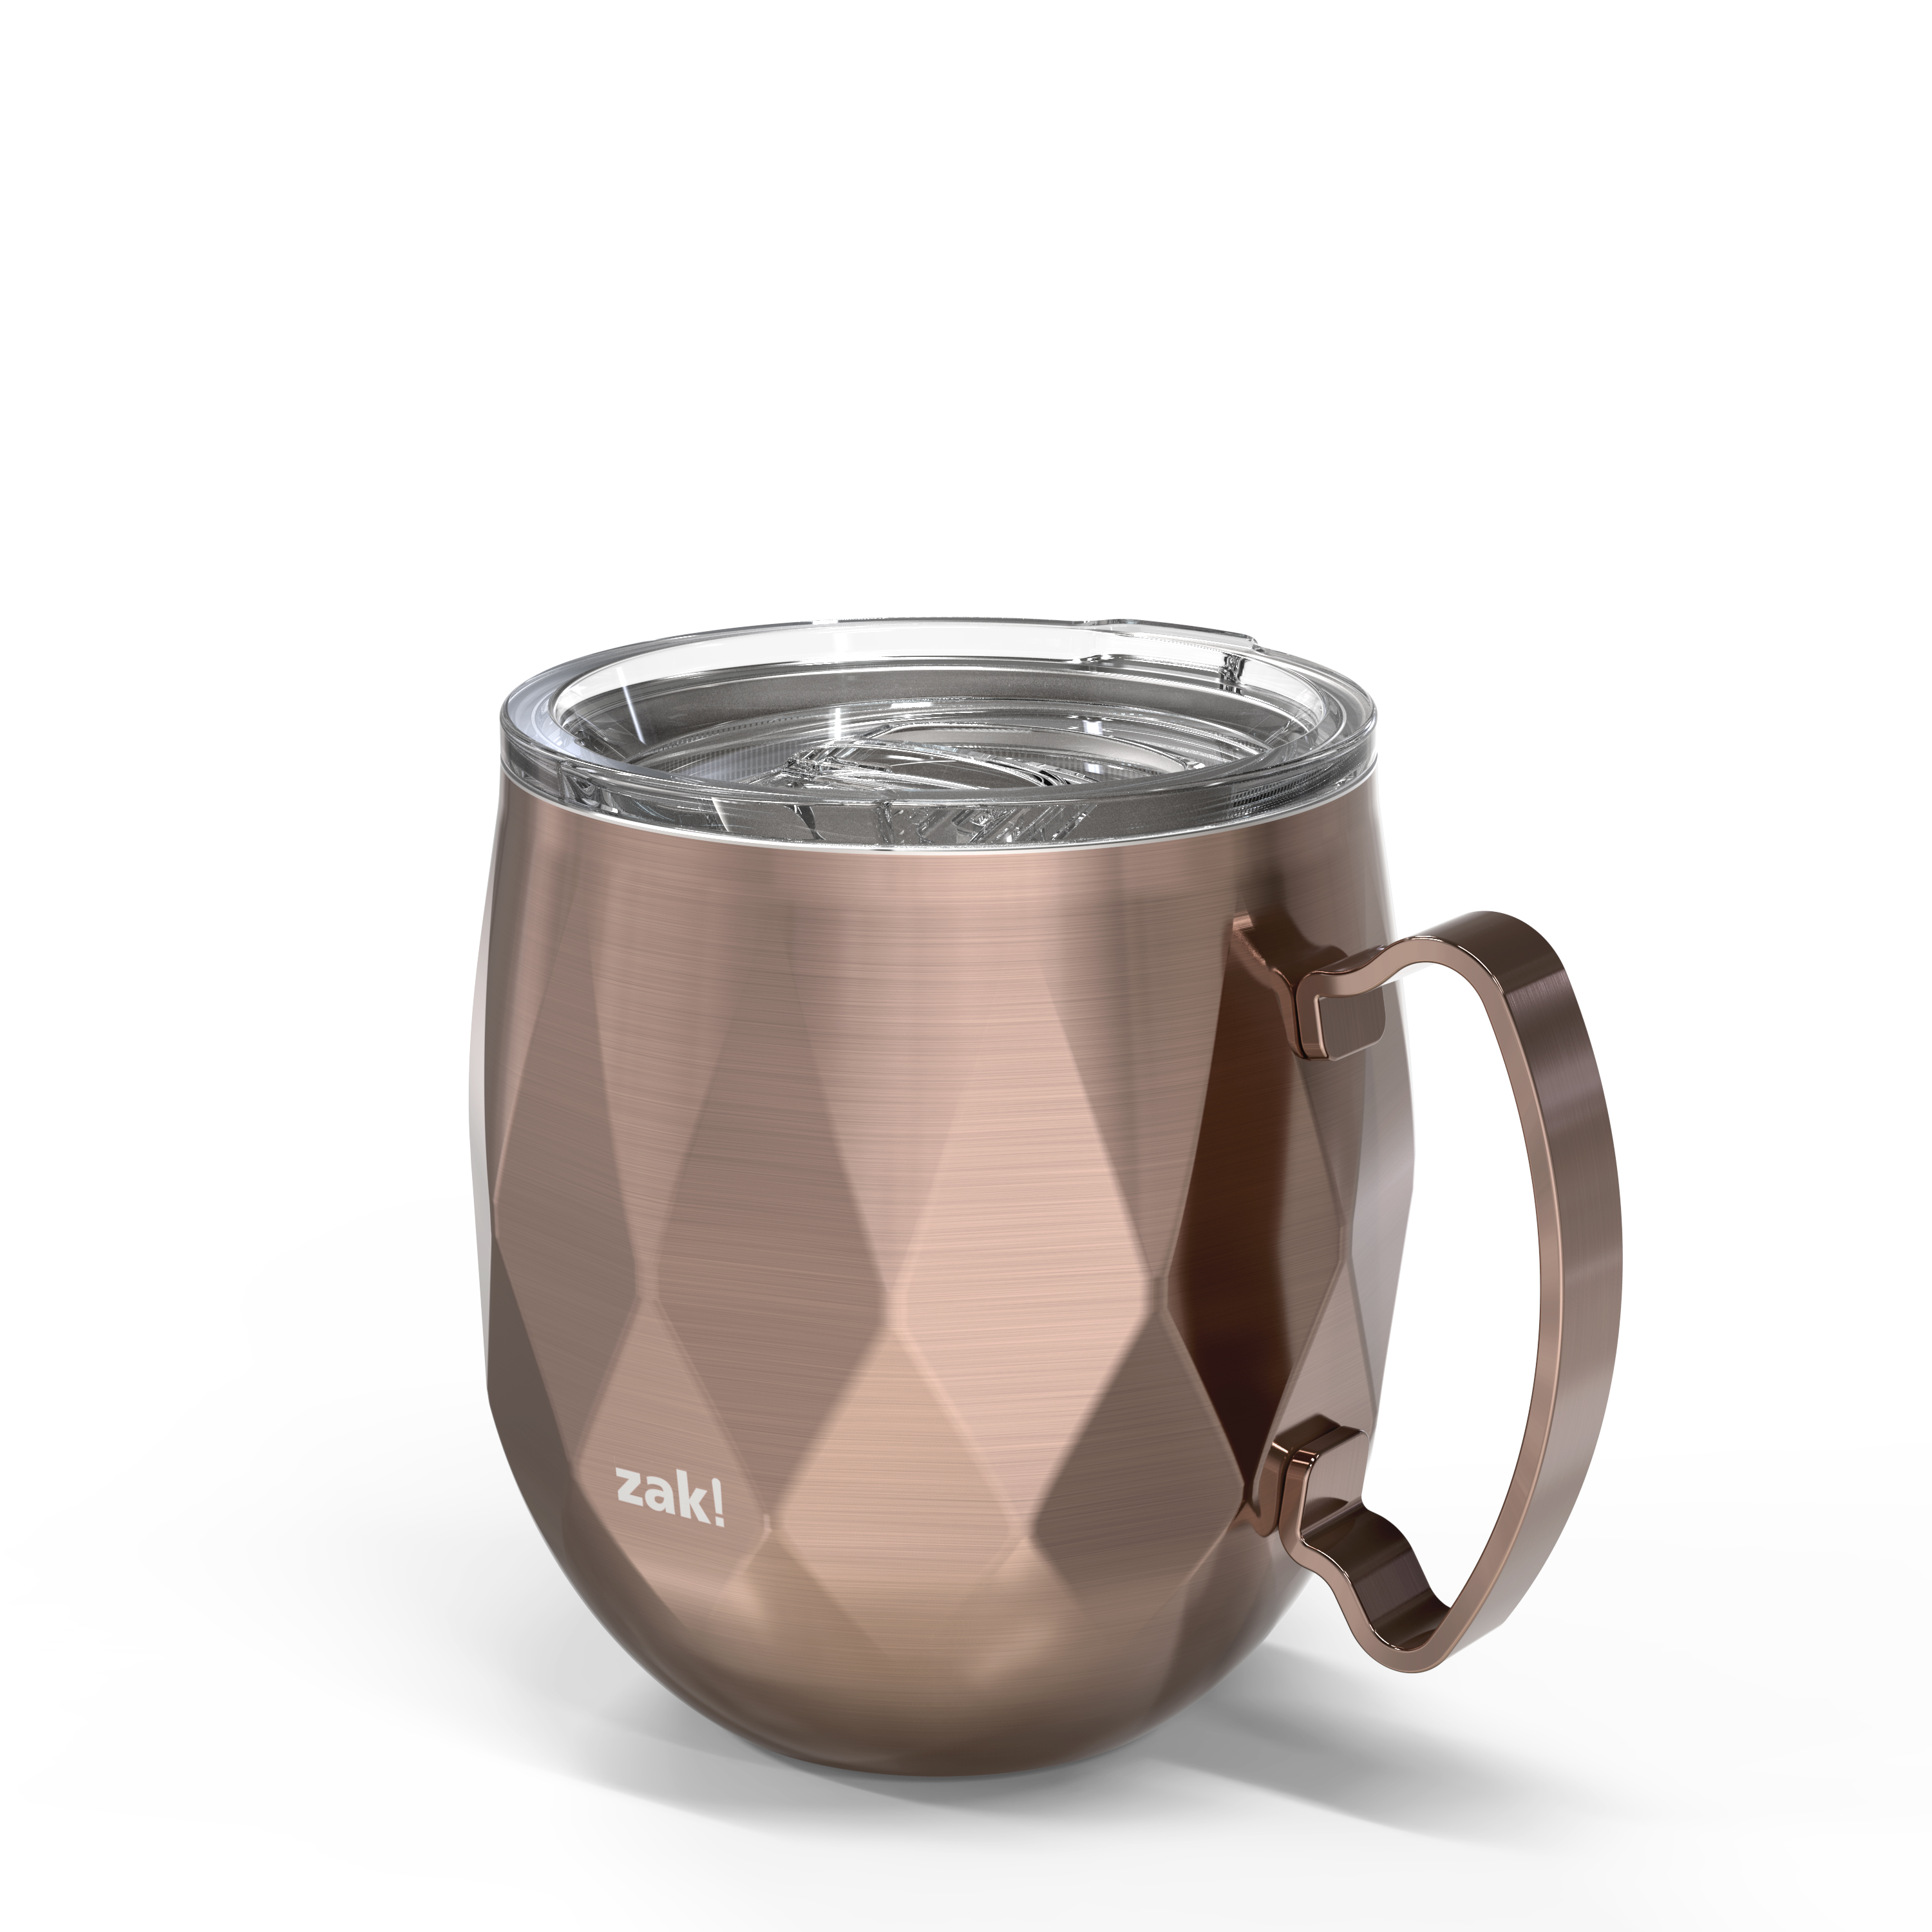 Fractal 19 ounce Vacuum Insulated Stainless Steel Mule Mug, Rose Gold slideshow image 2